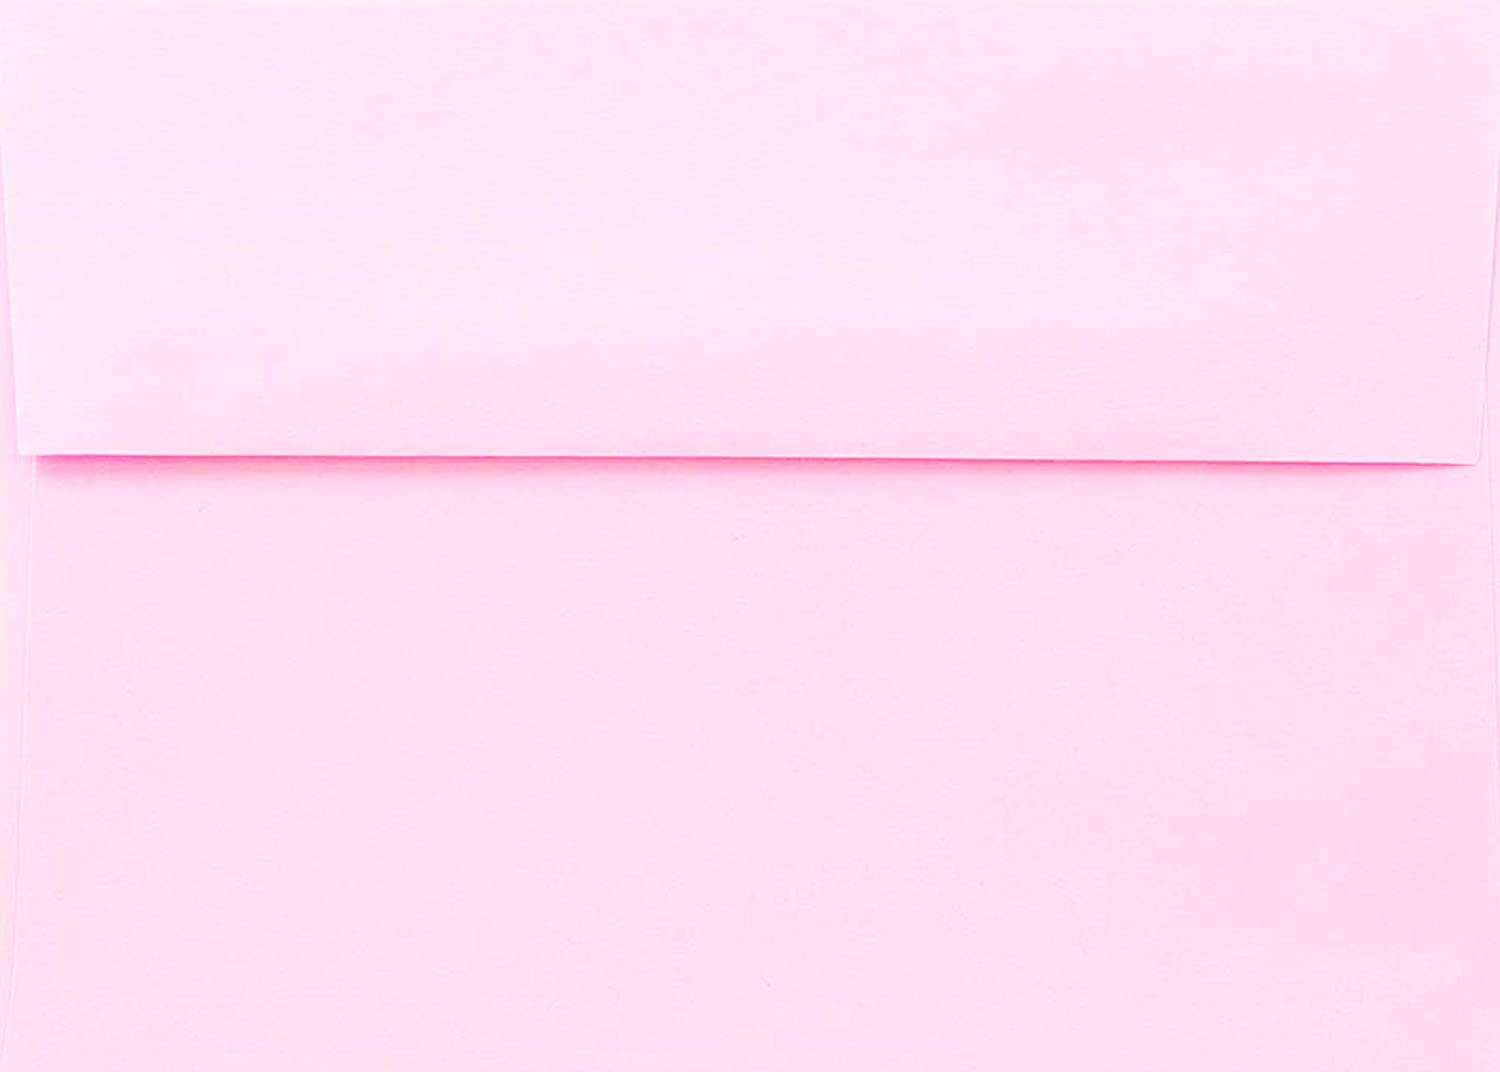 Pink Pastel 100 Boxed (5-1/4 x 7-1/4) A7 Envelopes for 5 X 7 Invitations Announcements from The Envelope Gallery